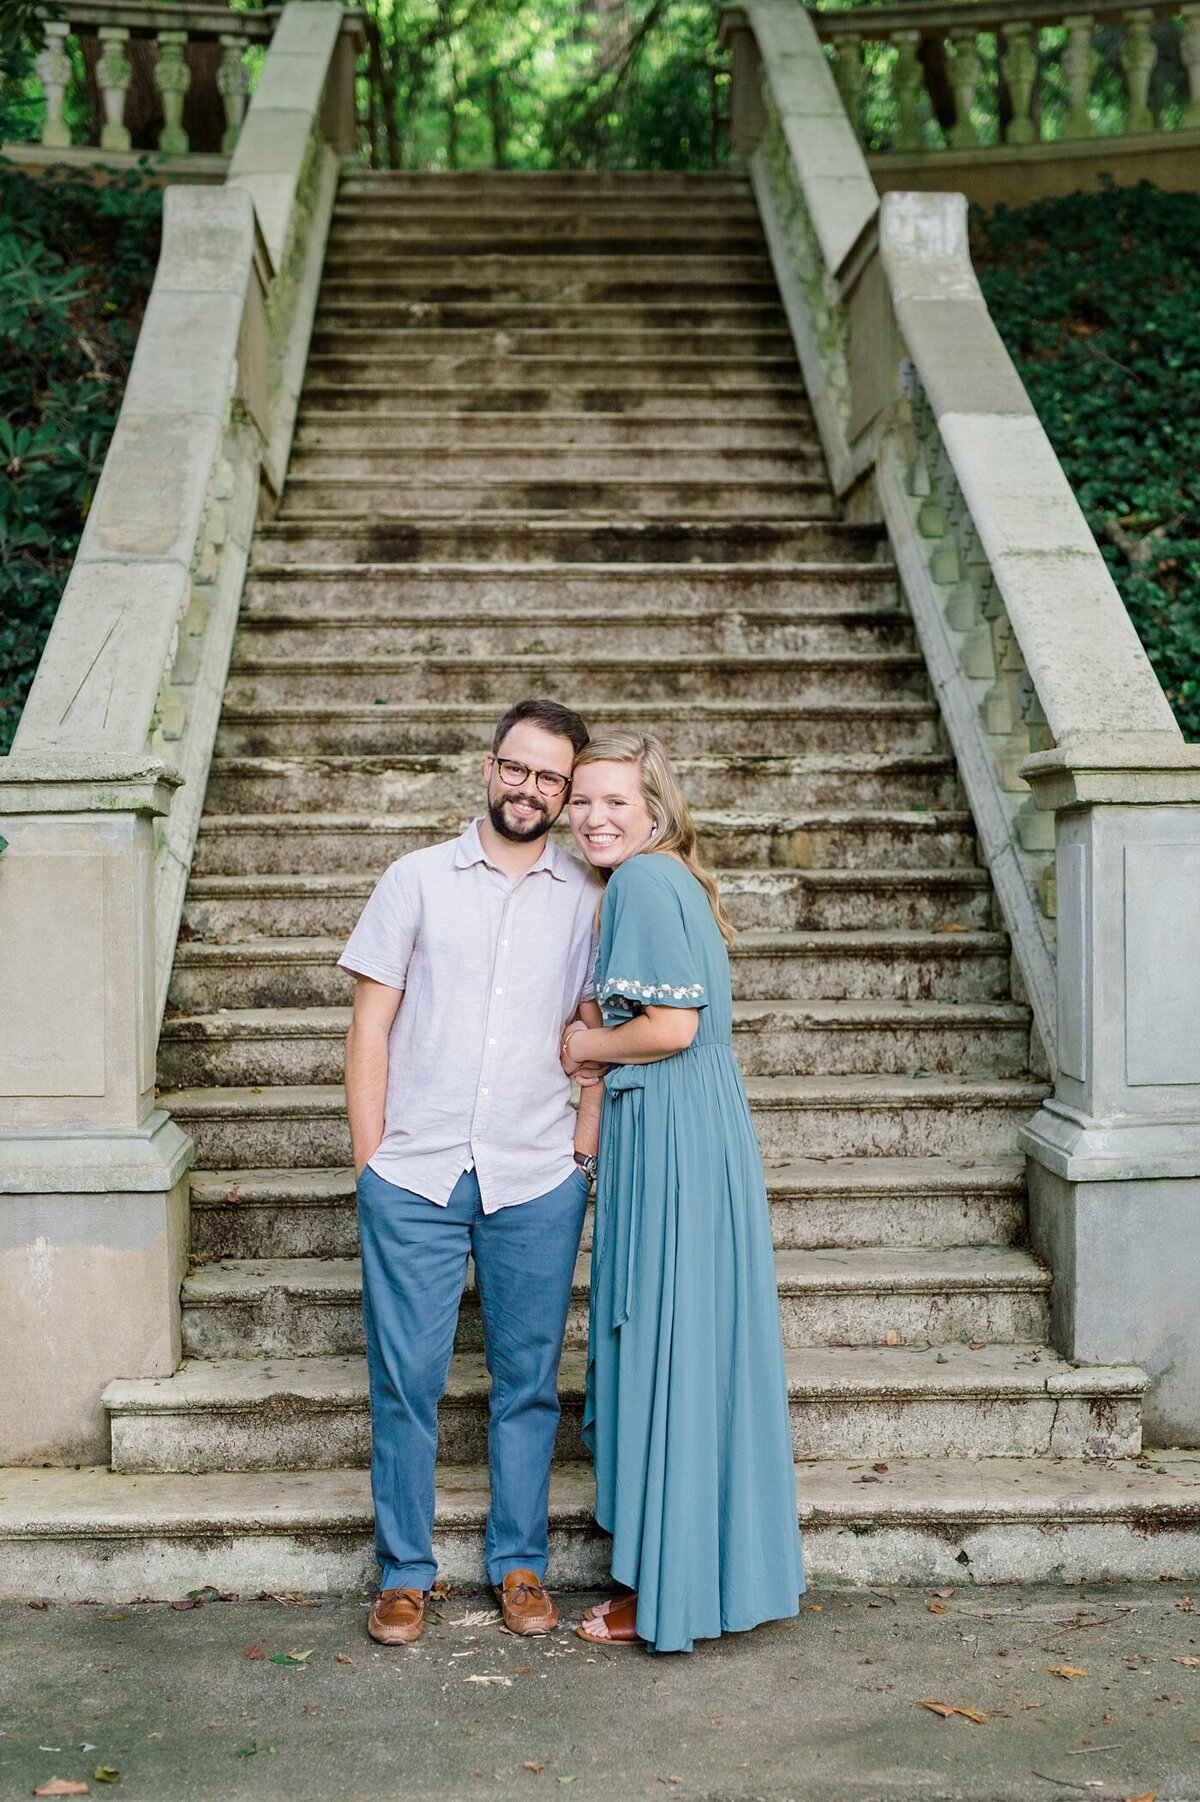 cator-woolford-gardens-engagement-wedding-photographer-laura-barnes-photo-shackelford-20